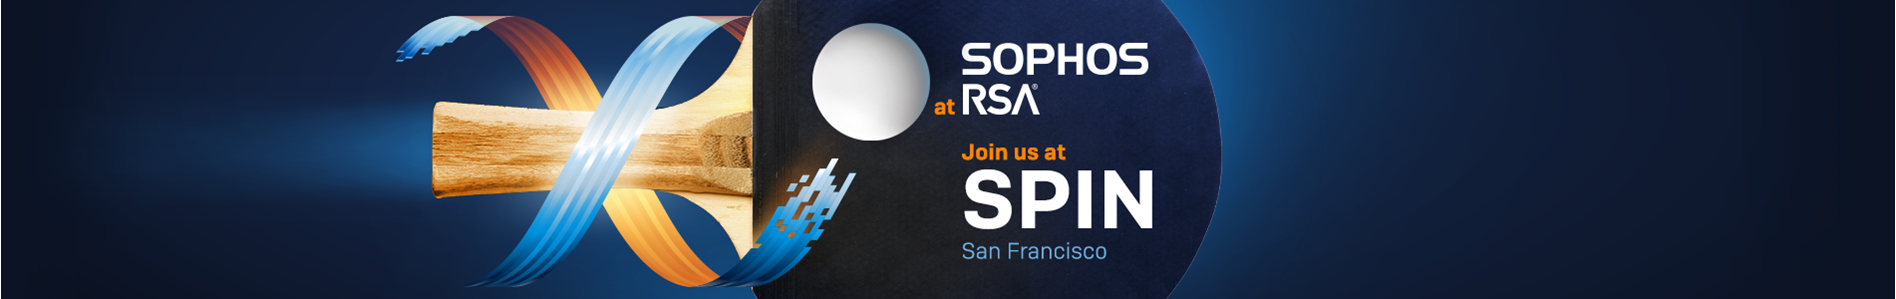 https://secure2.sophos.com/en-us/company/events/northsouthamerica/spin-rsa/feb-15-2017.aspx?cmp=70130000001xIObAAM